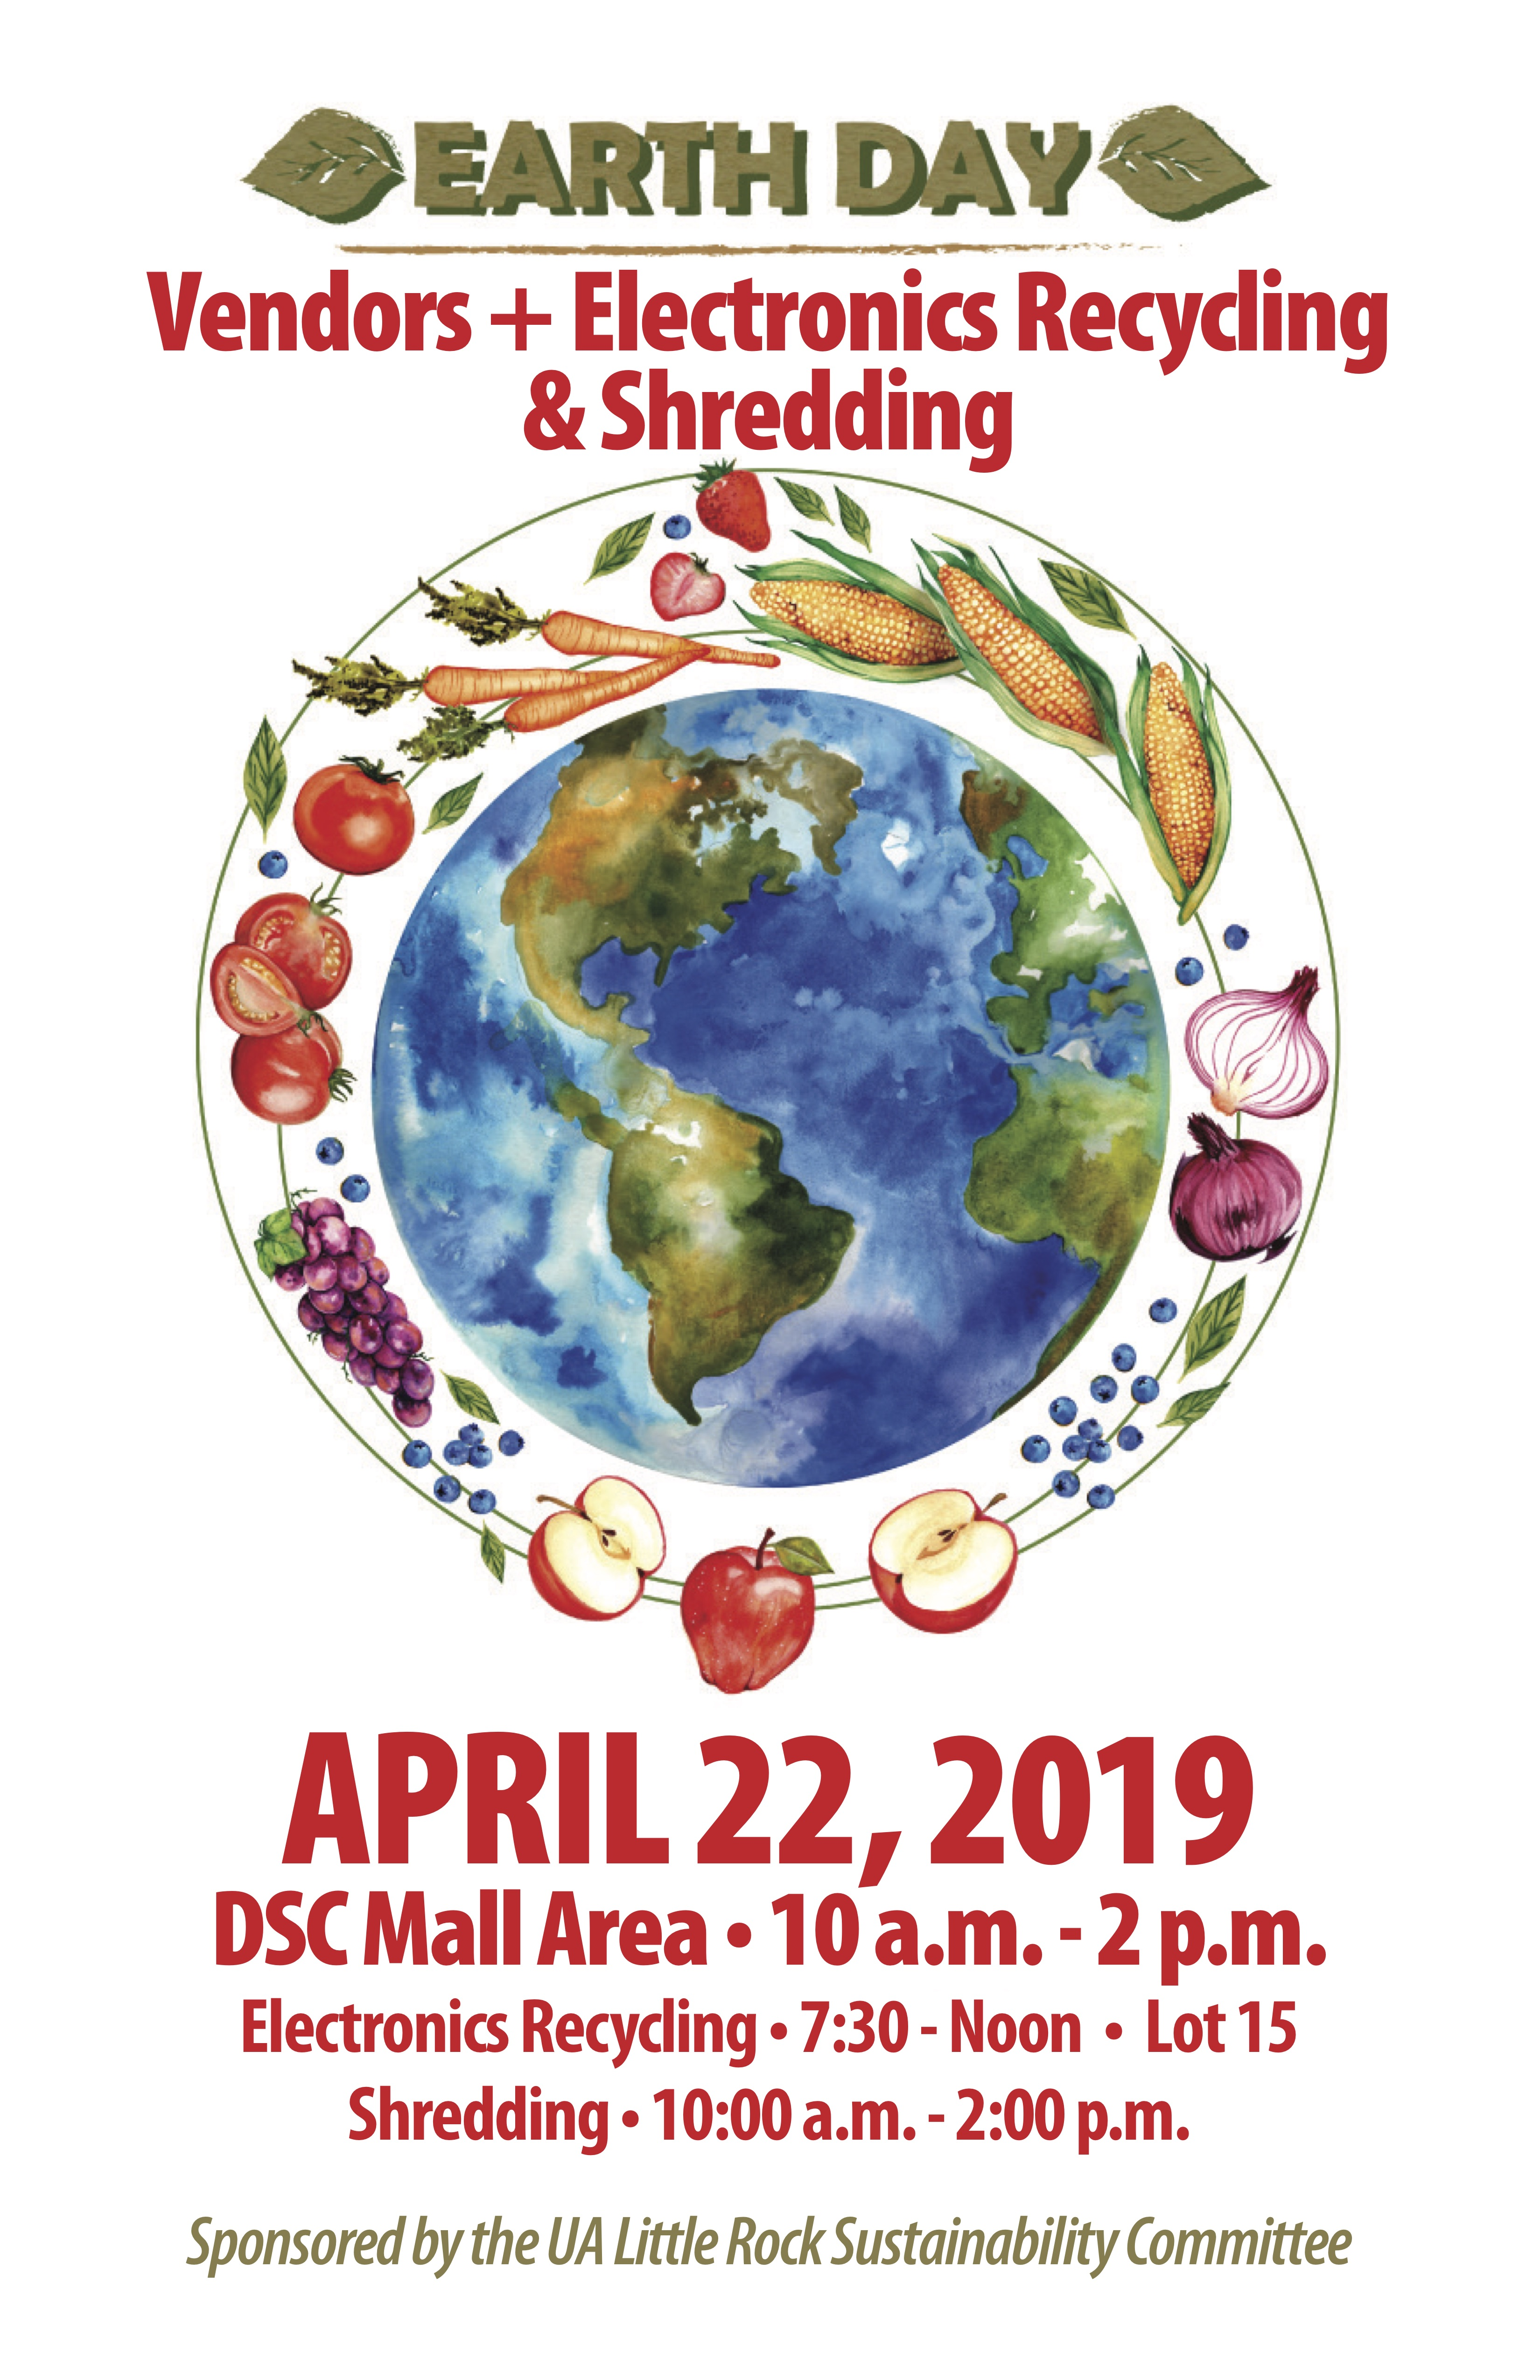 Earth Day 2019 Committee On Sustainability